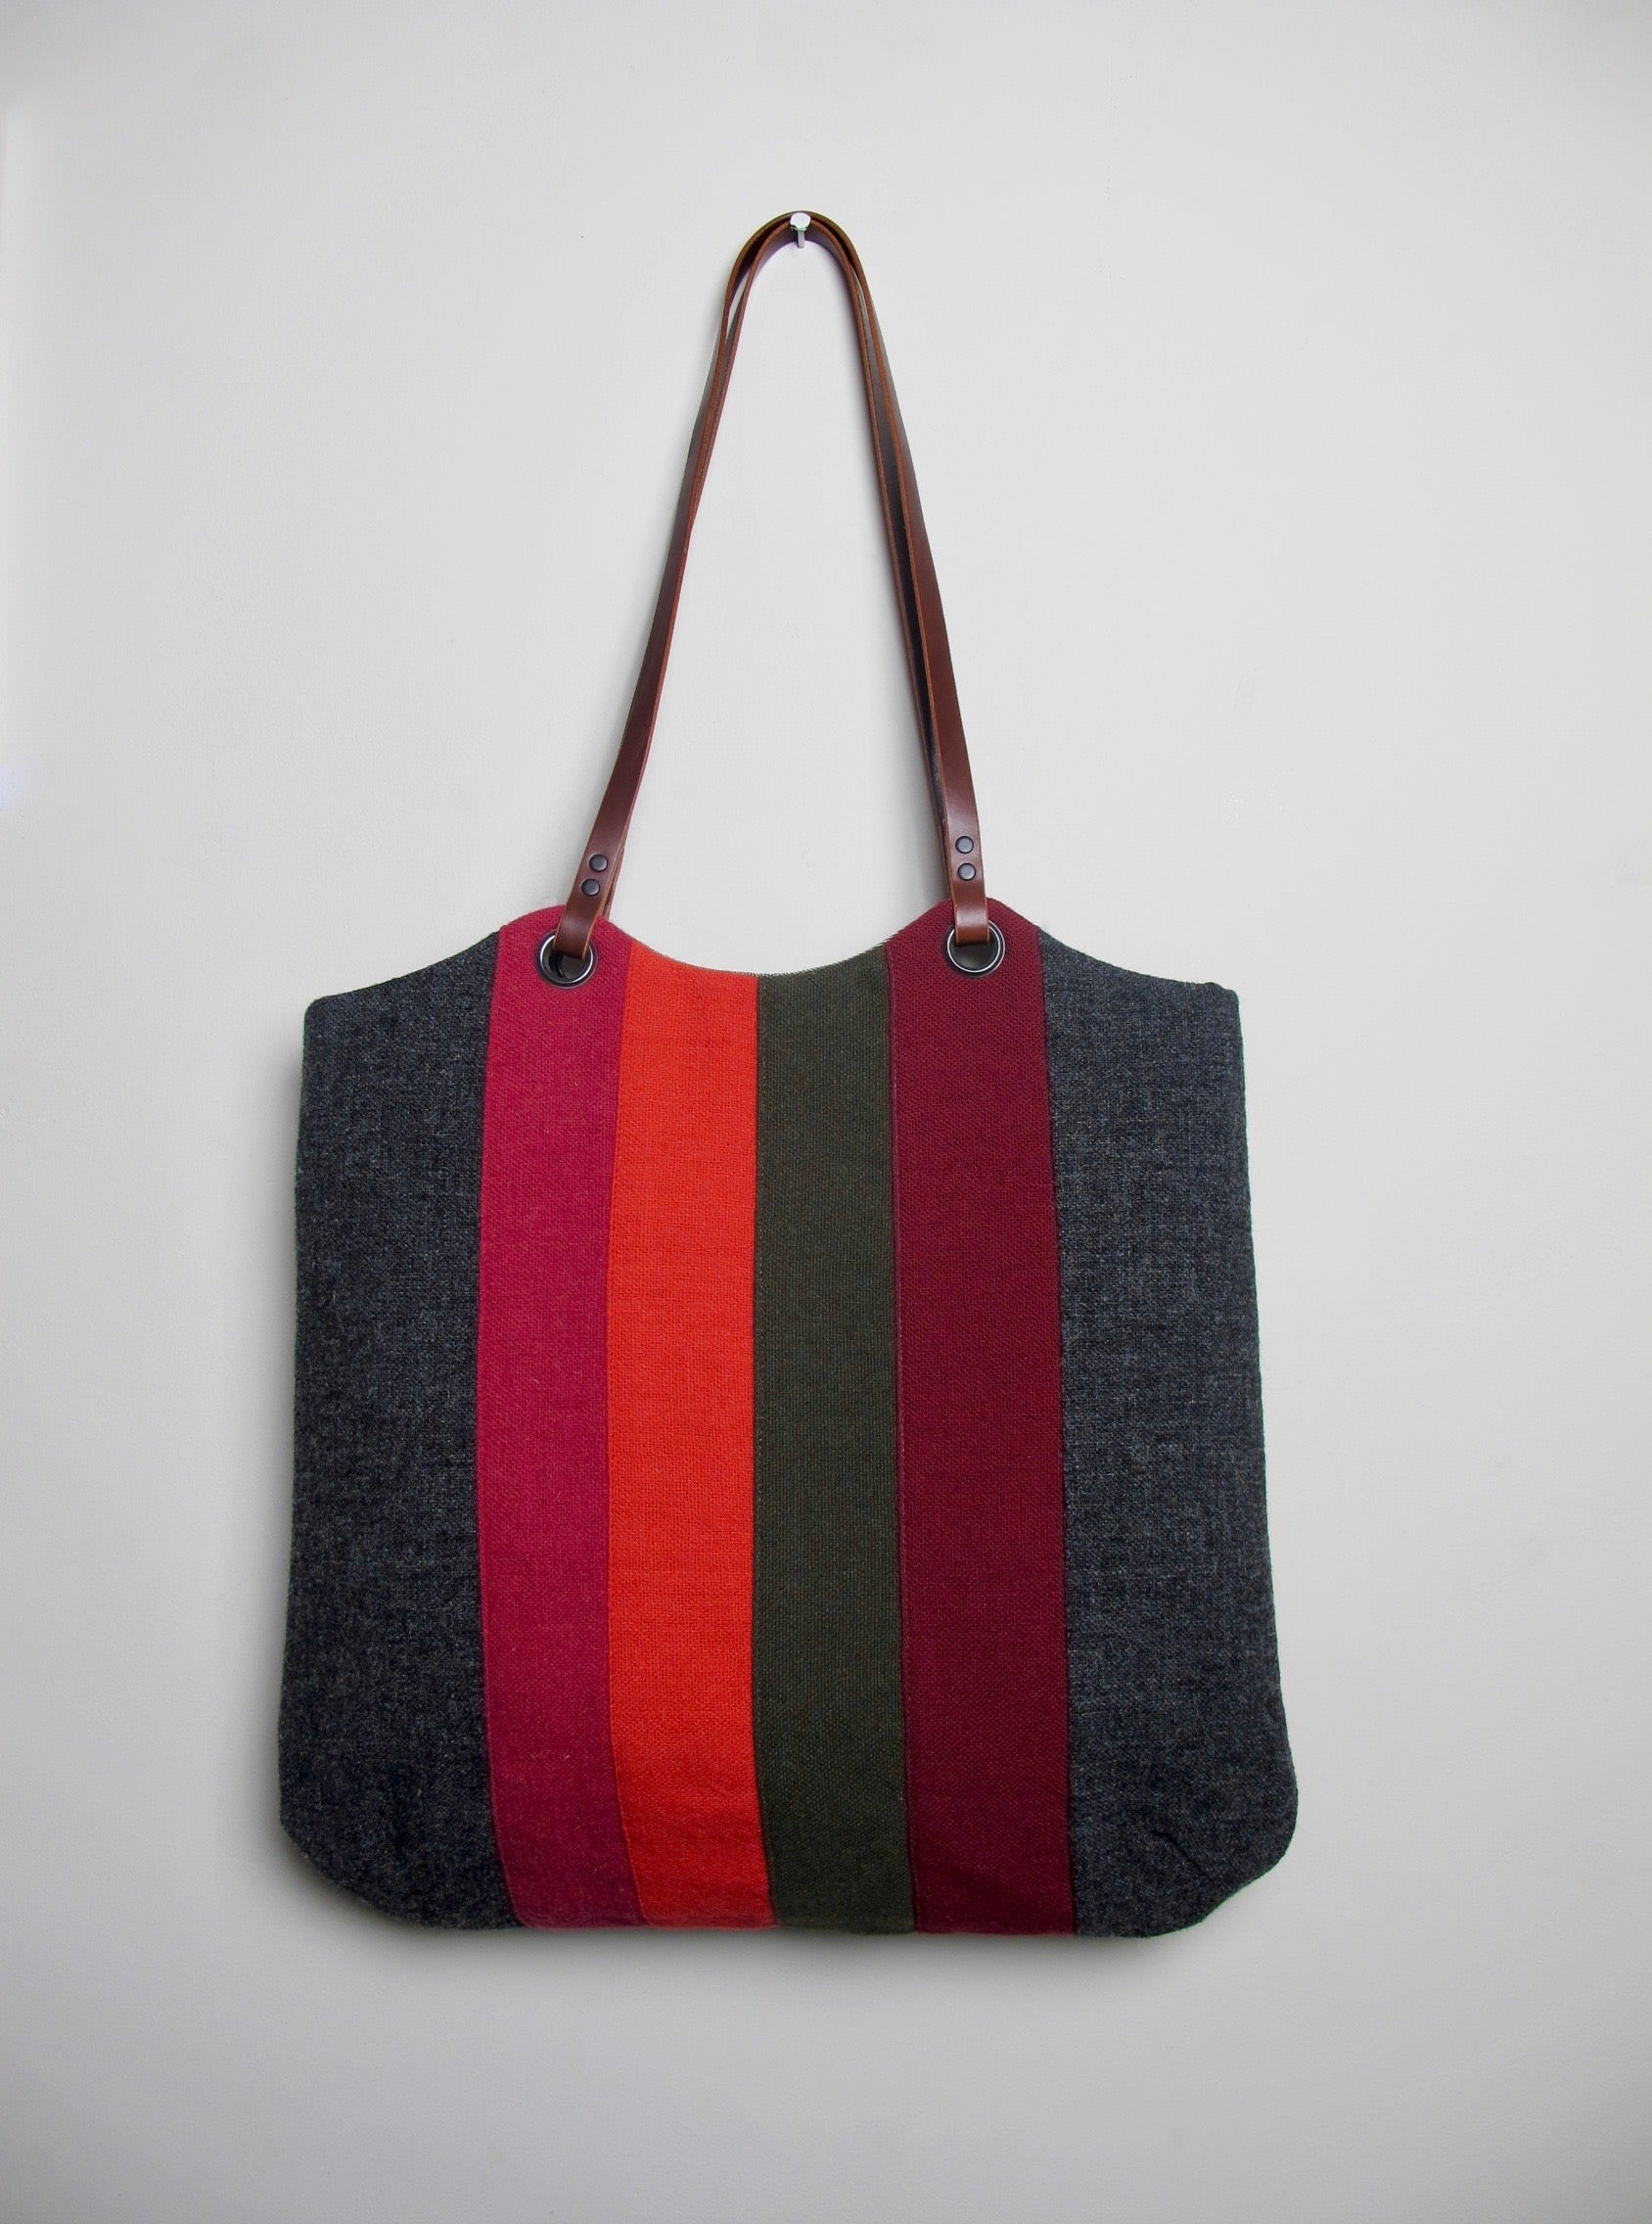 Patchwork Tote Bag - old school graphite I